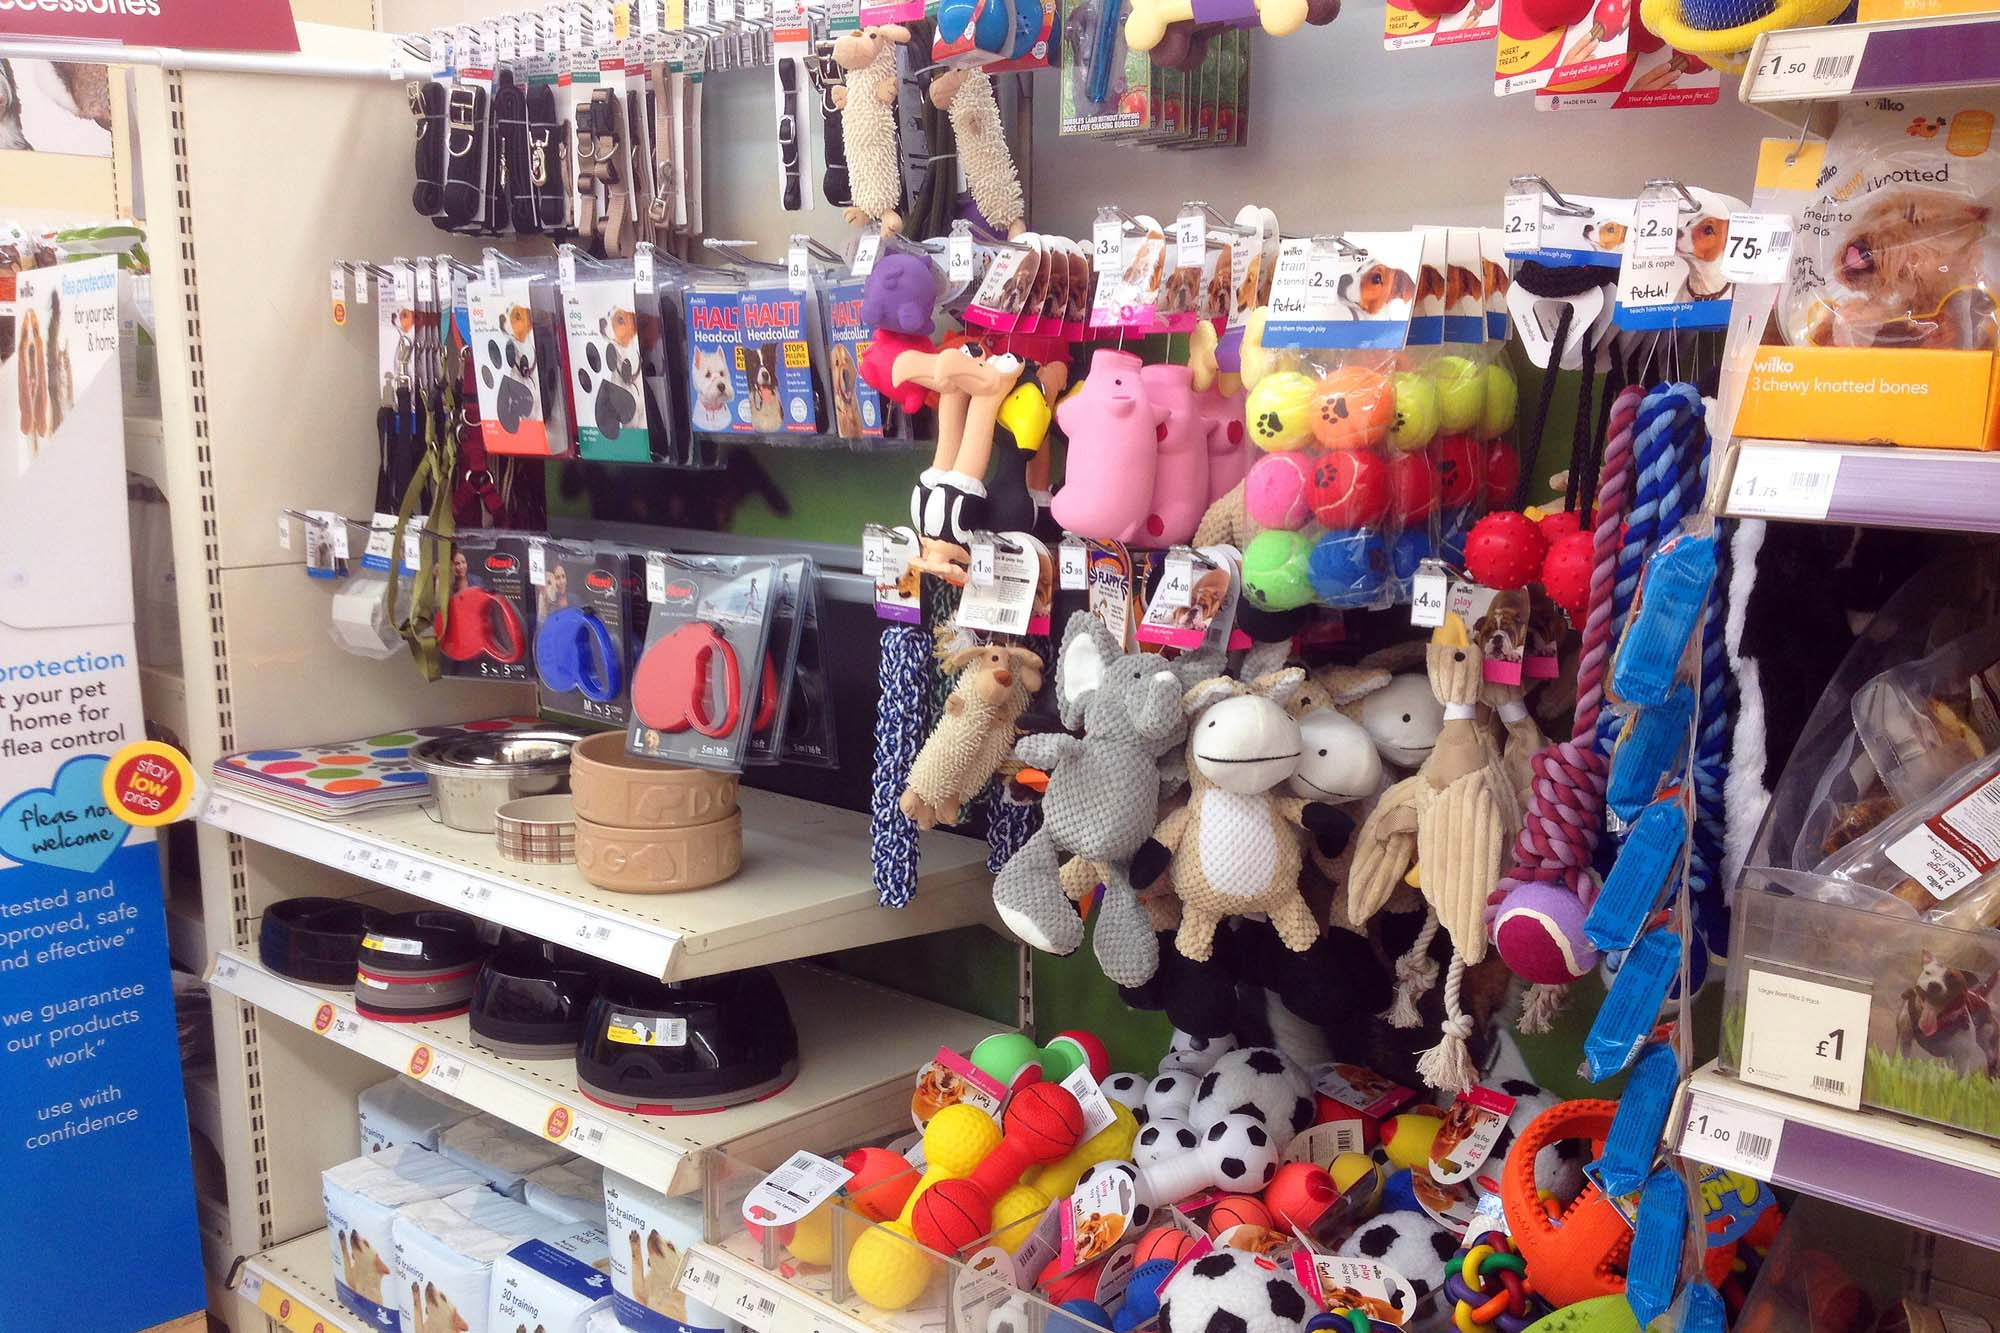 Pet Accessories, dog leads and feeding bowls